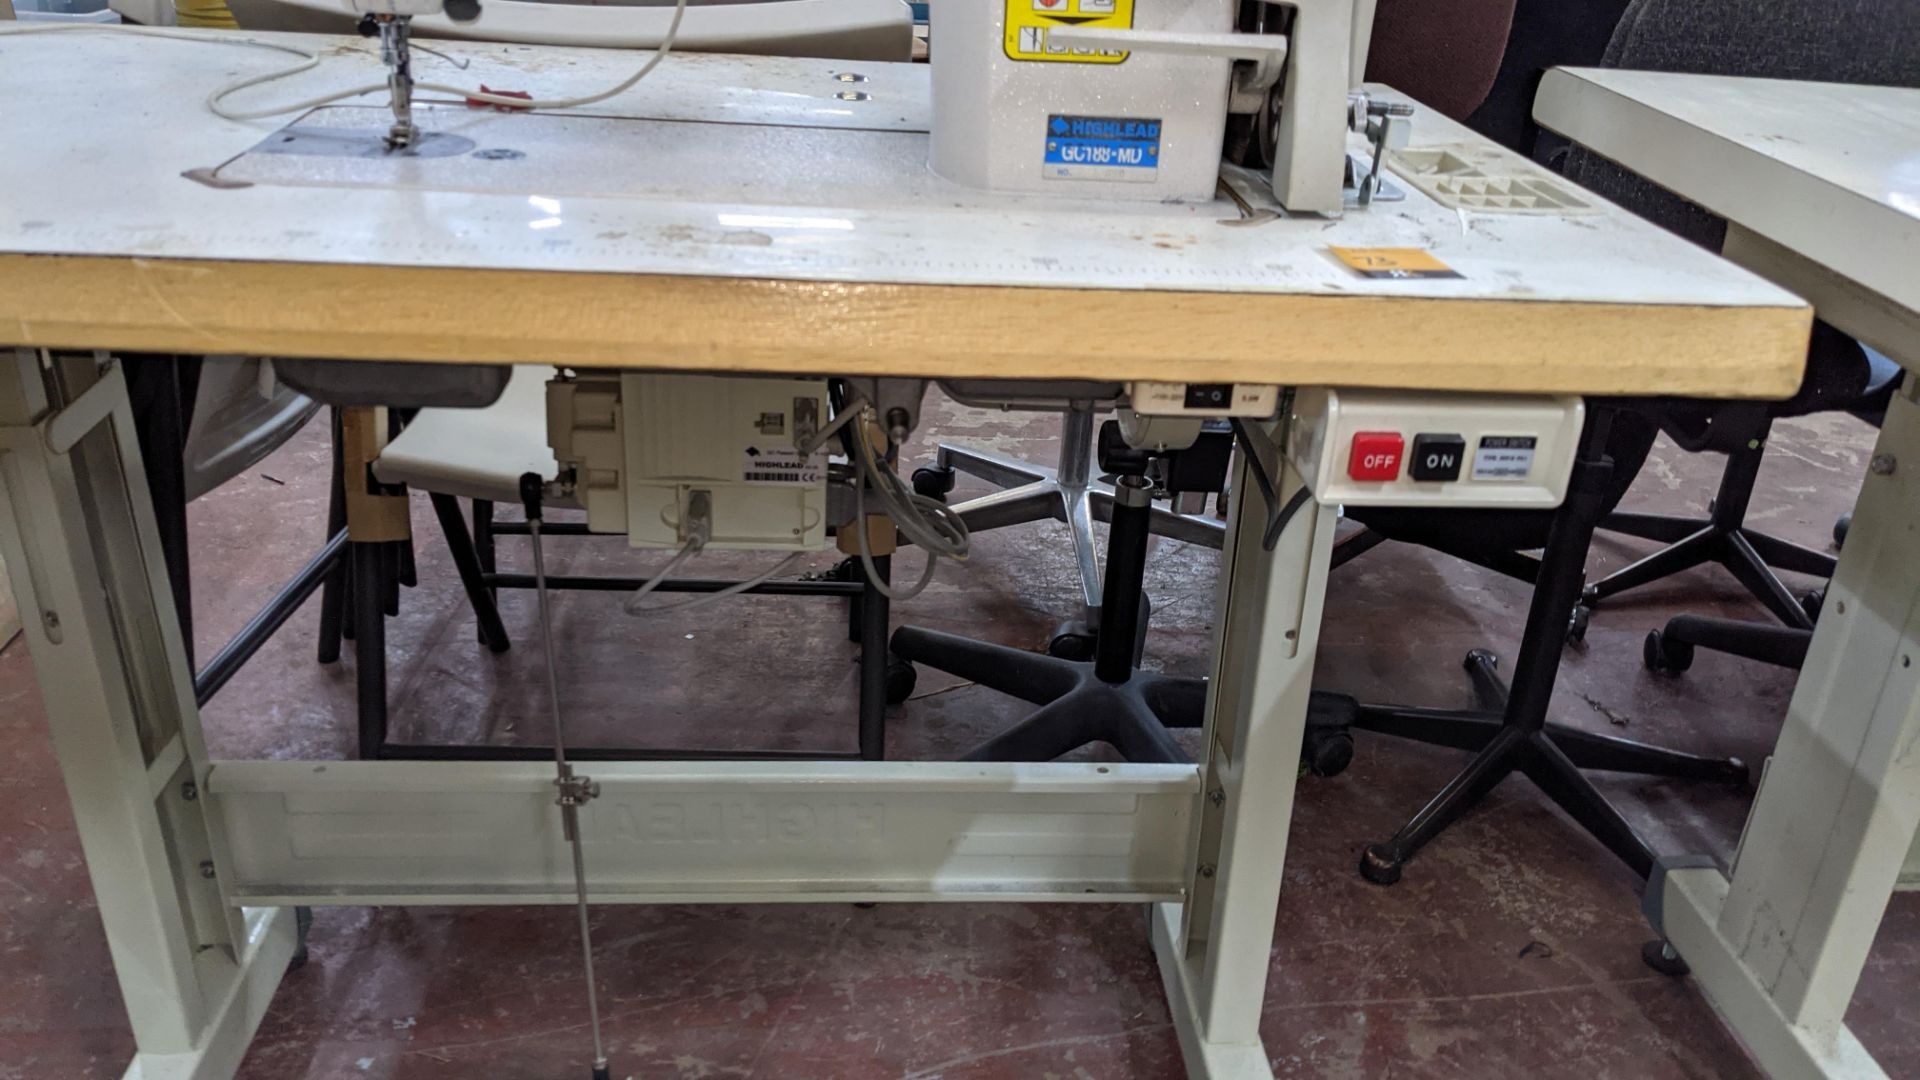 Highlead model GC188-MD sewing machine with model F-10 digital controller - Image 15 of 16